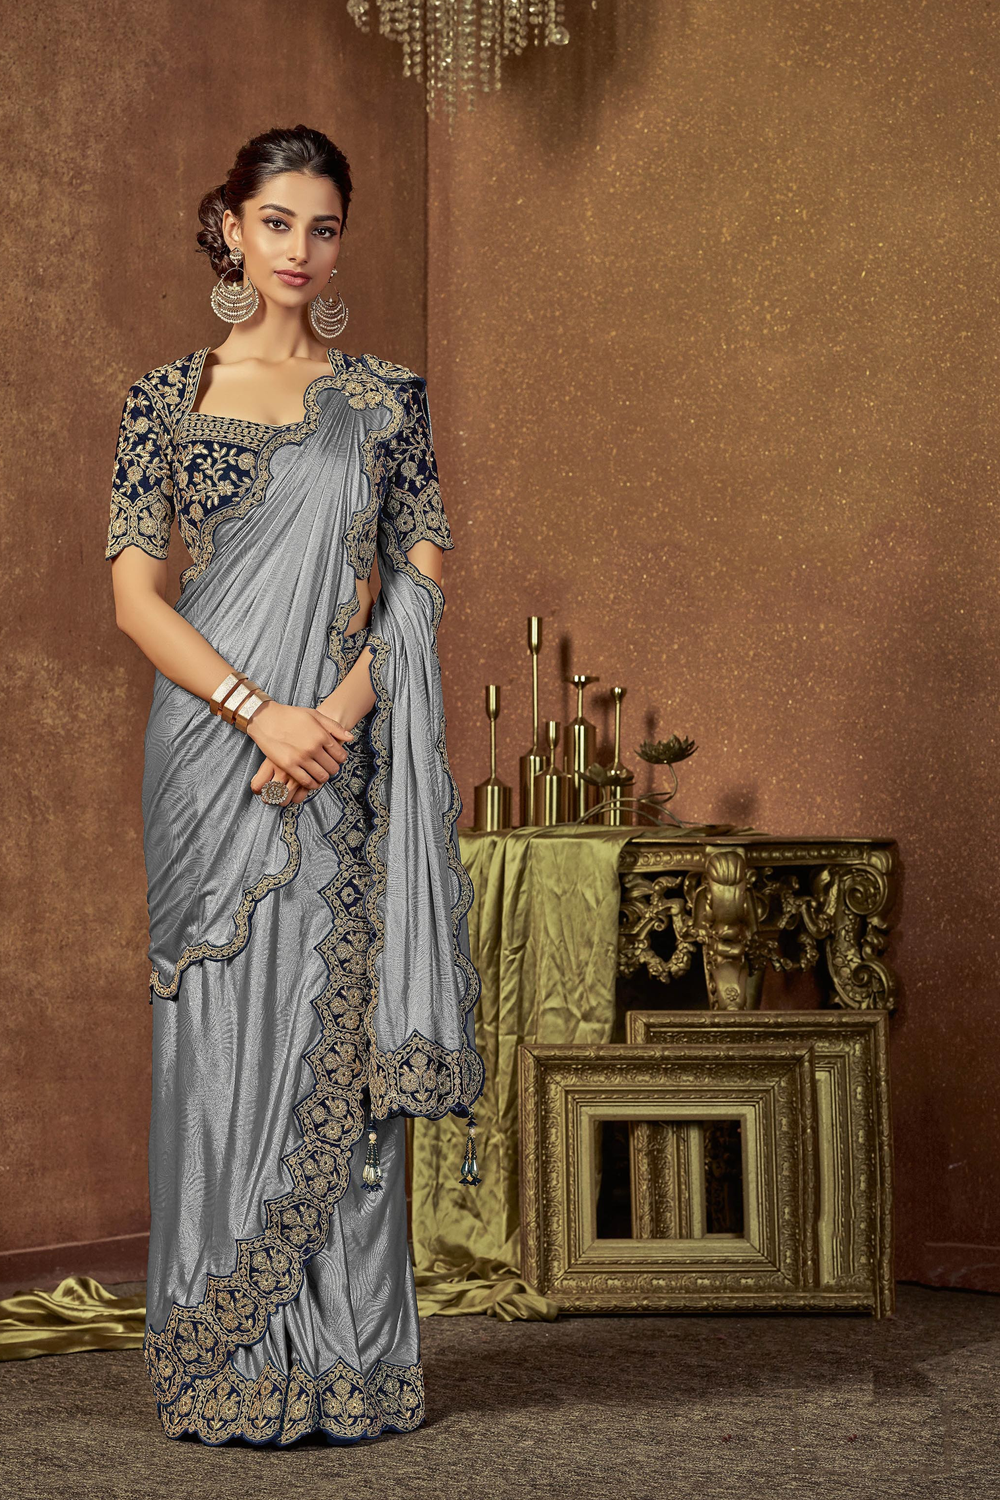 Pre-draped saree masterfully designed with chic cuts